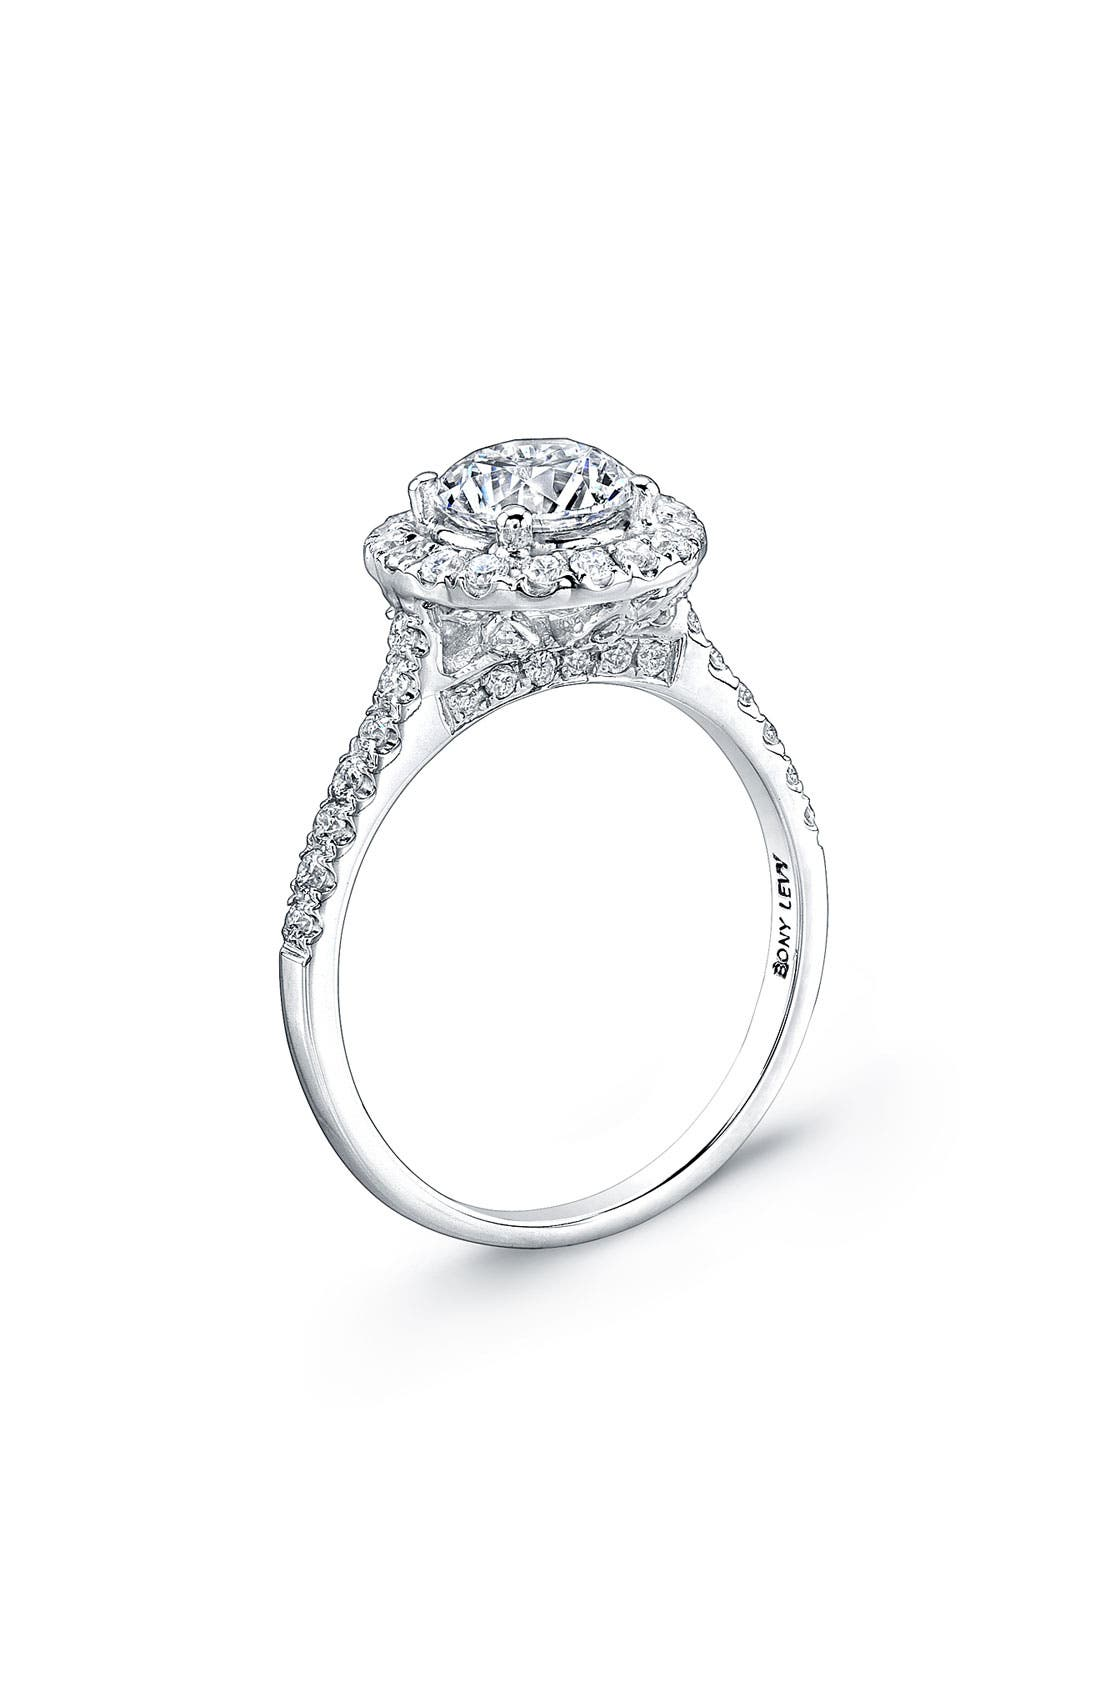 Alternate Image 2  - Bony Levy Pavé Diamond Leaf Engagement Ring Setting (Nordstrom Exclusive)